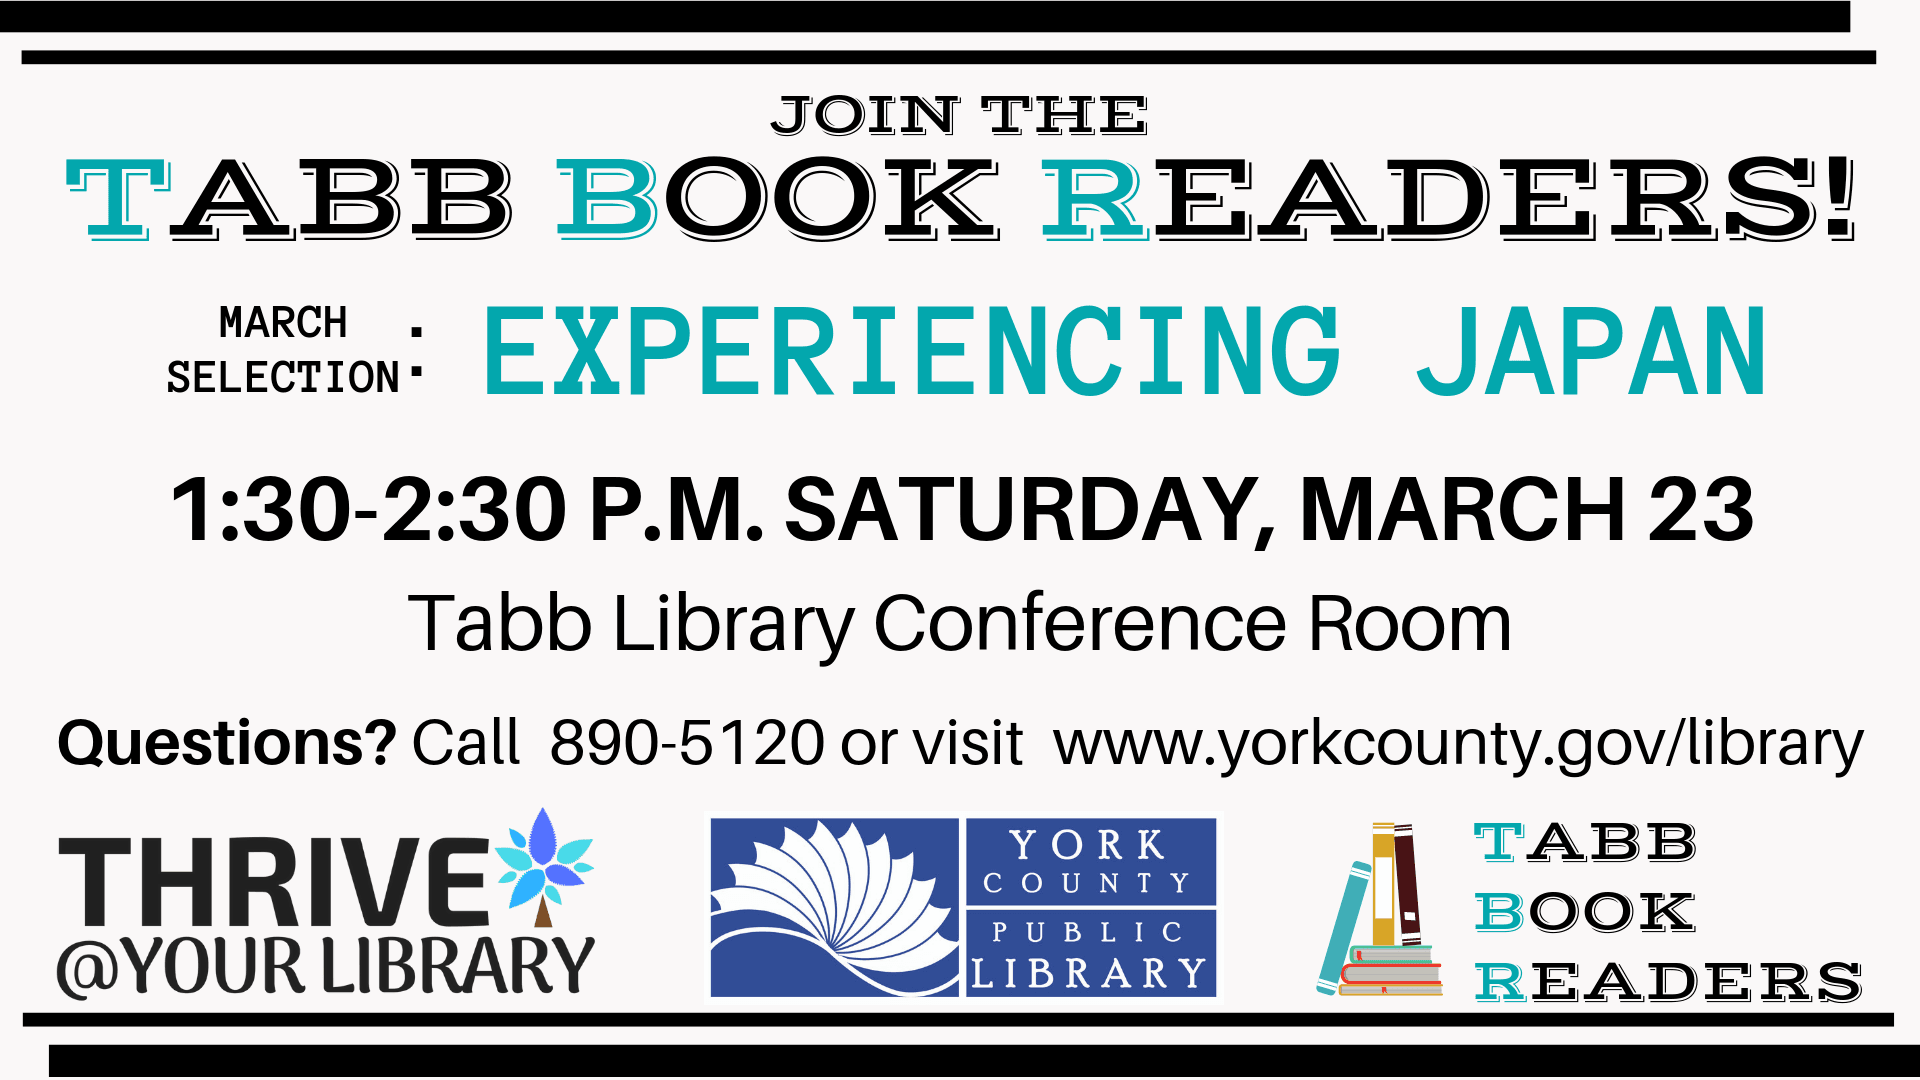 Tabb Book Readers meets at the Tabb Library. March's selections focus on Experiencing Japan